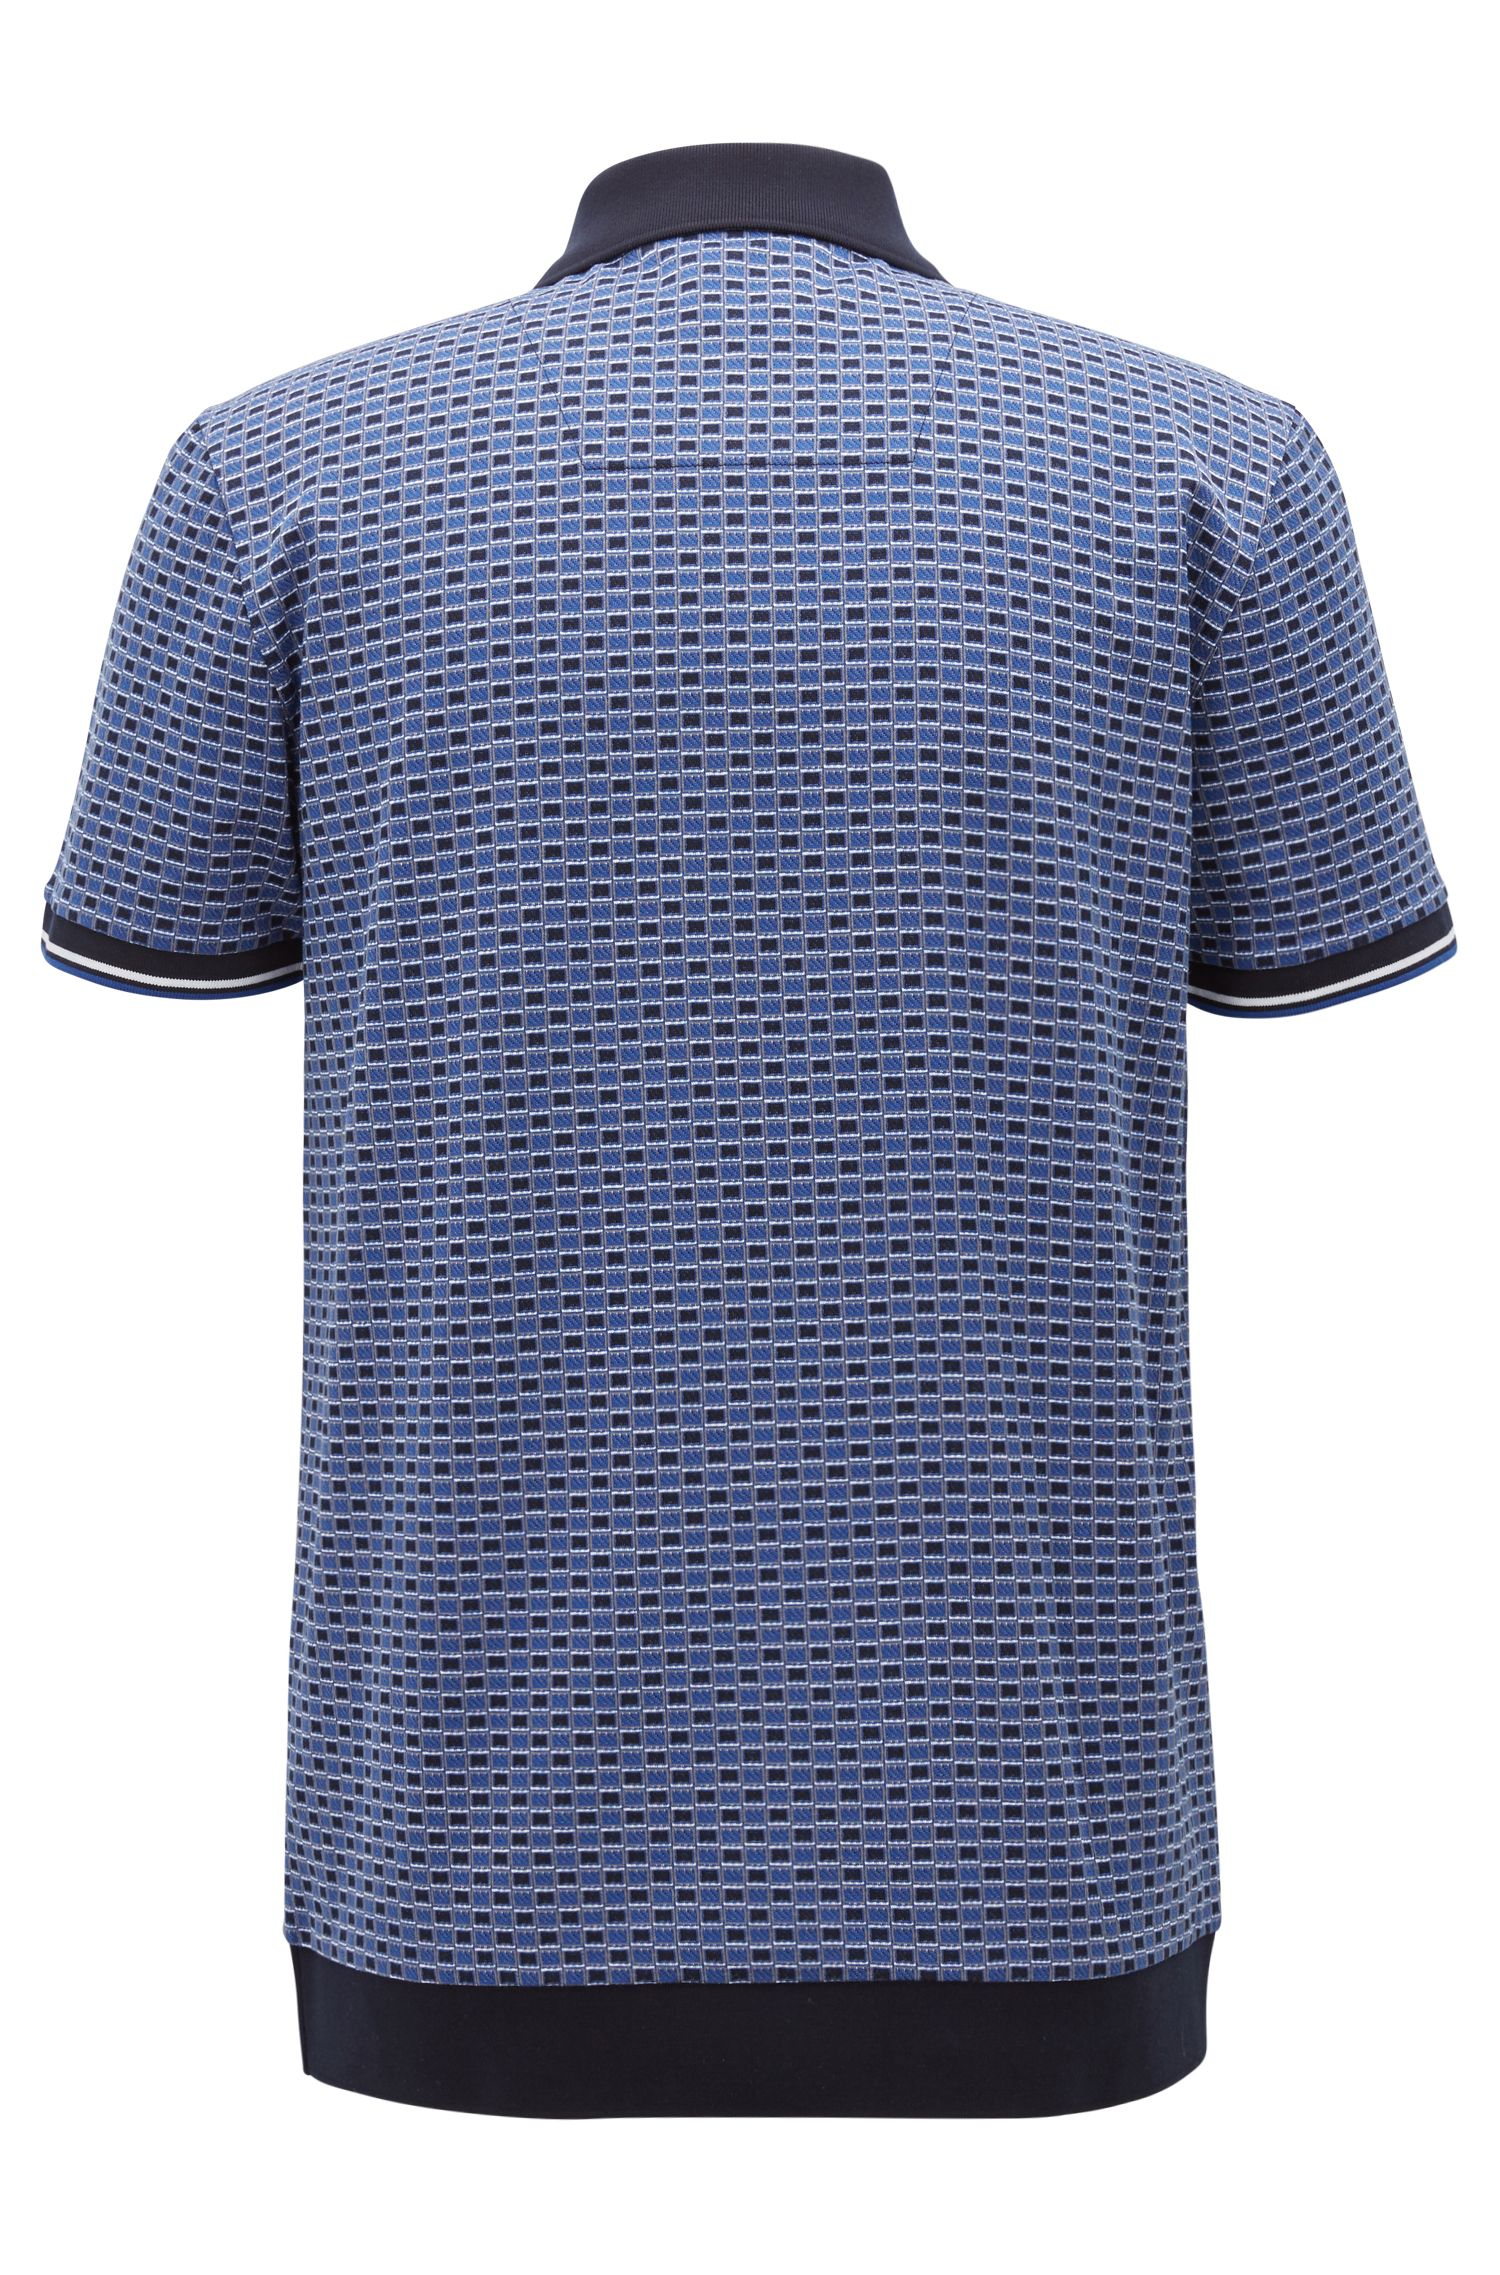 Micro-patterned polo shirt in cotton jacquard